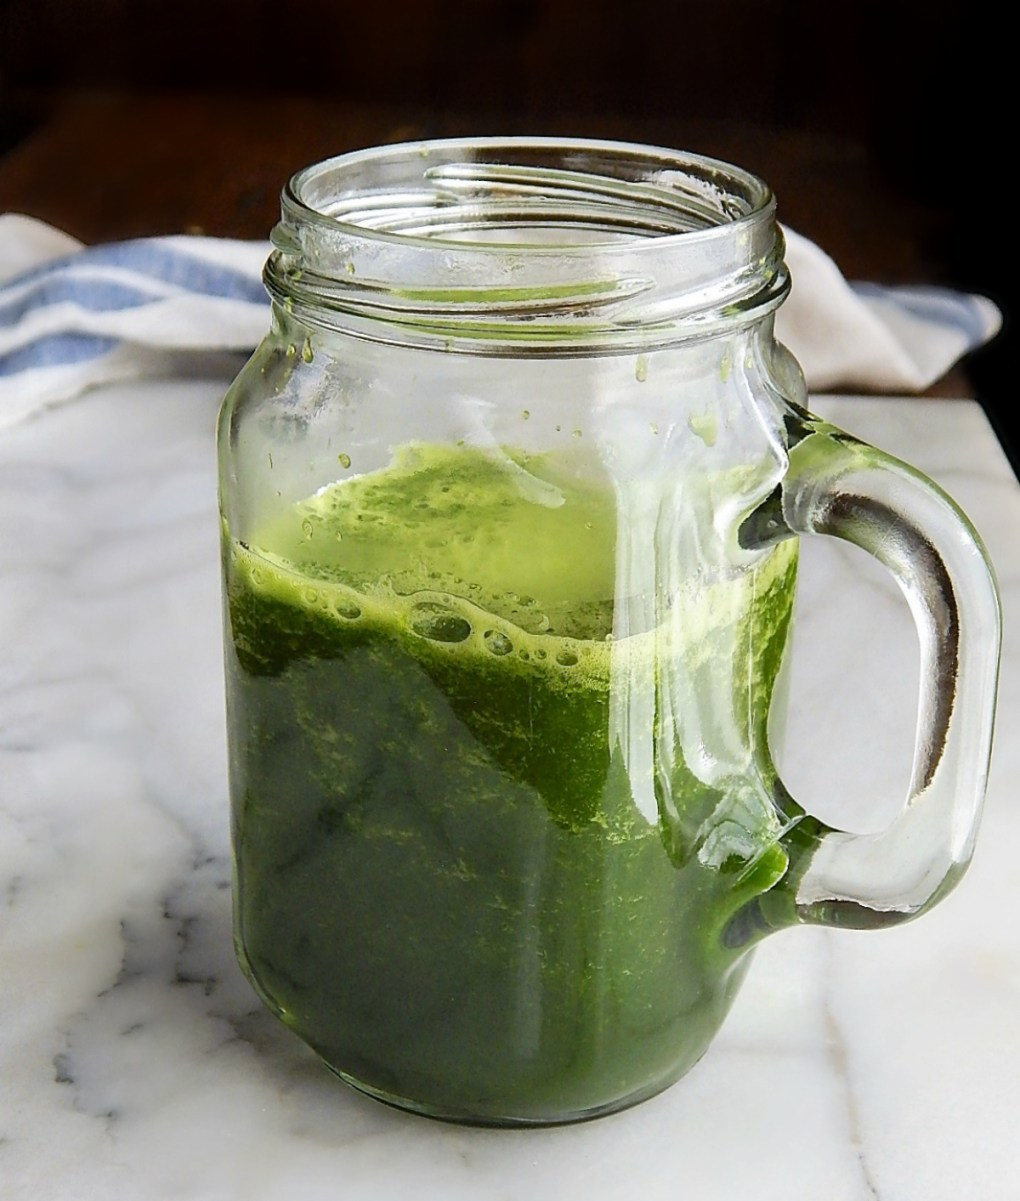 My Big Fat Green Smoothies made from wasted vegetable parts